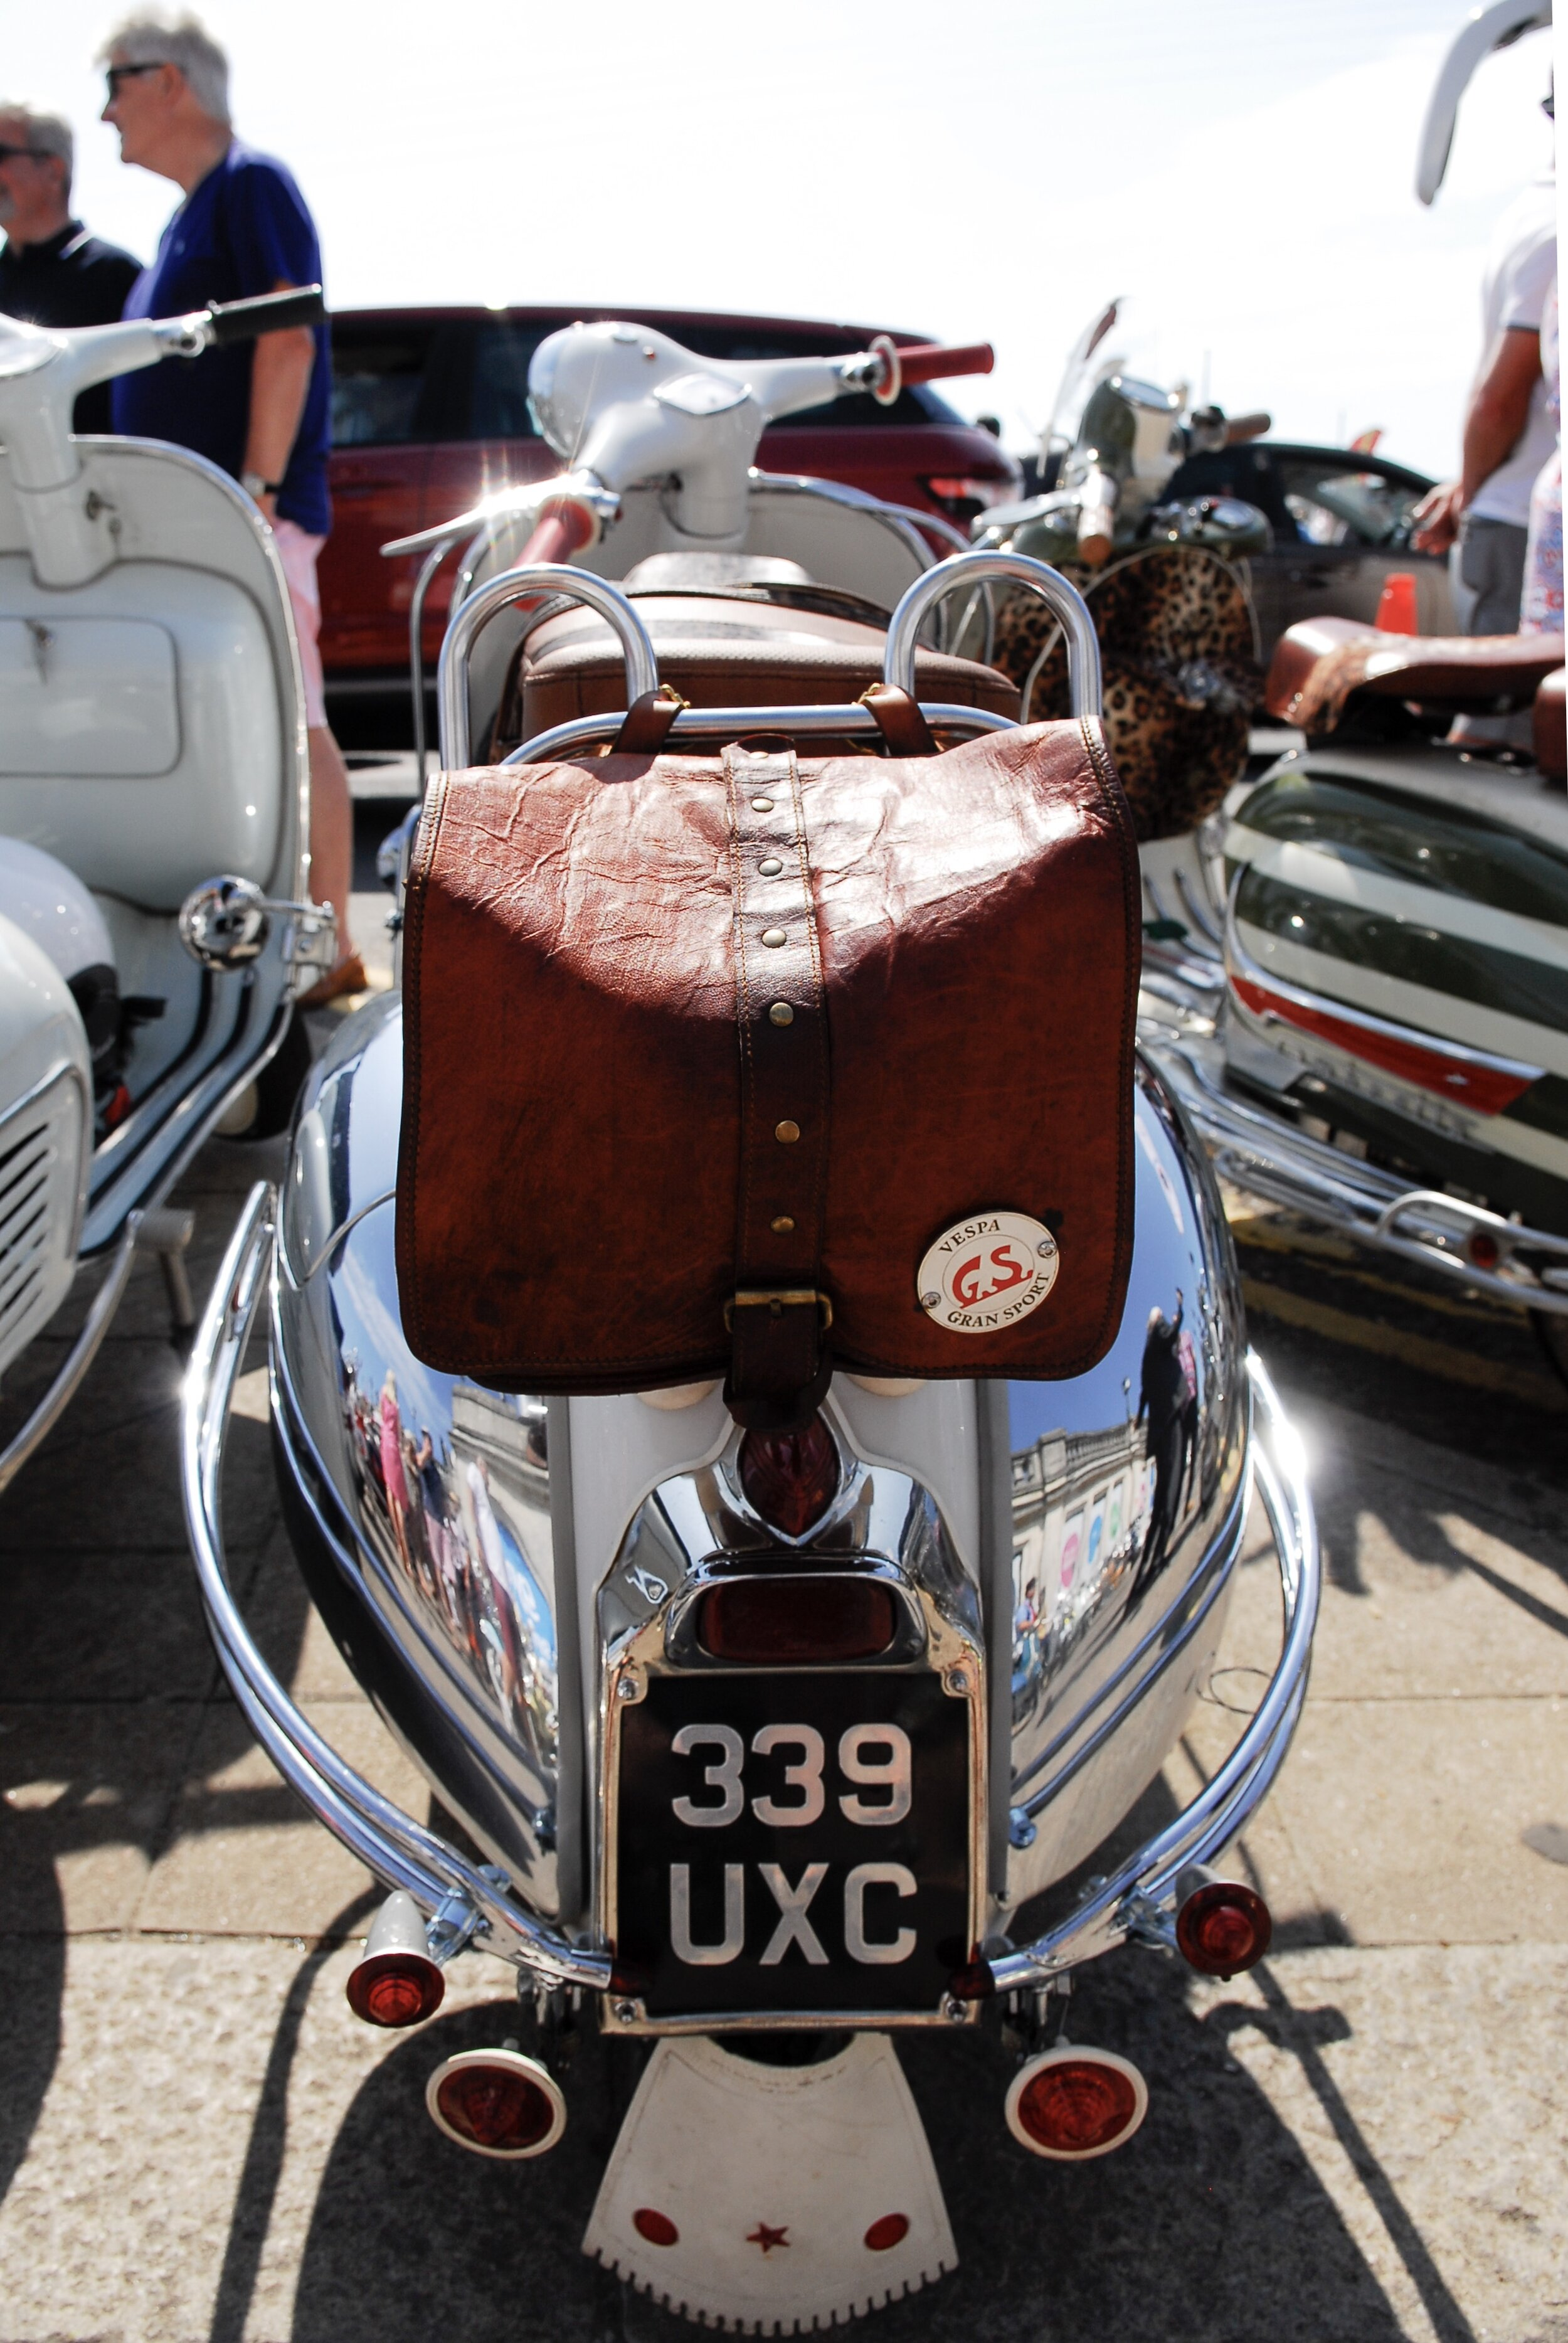 …and rear of another VVC's member's GS150 - this one belonging to Gary Lining..